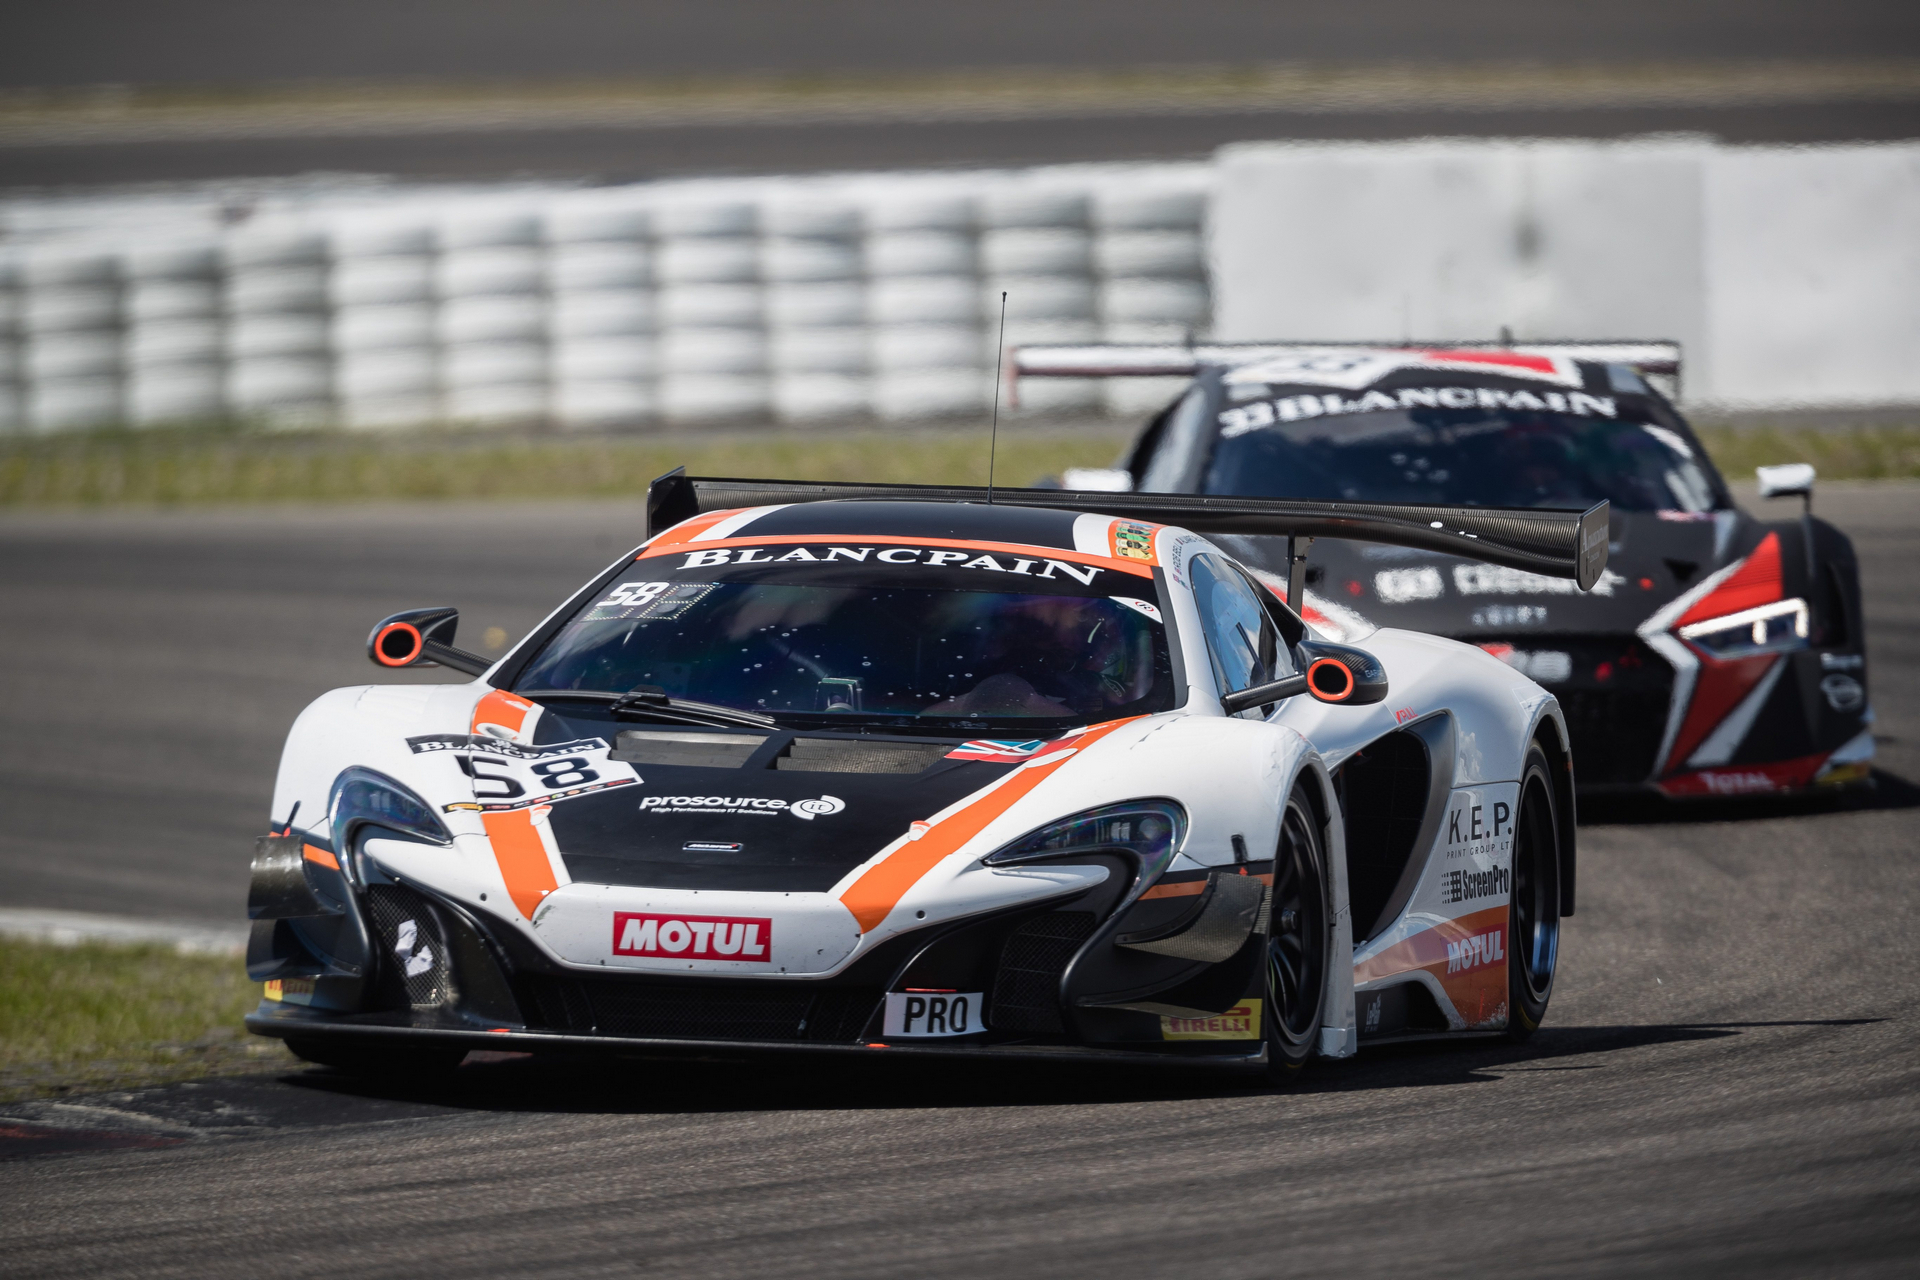 McLaren returns to the Total 24 Hours of Spa © McLaren Automotive